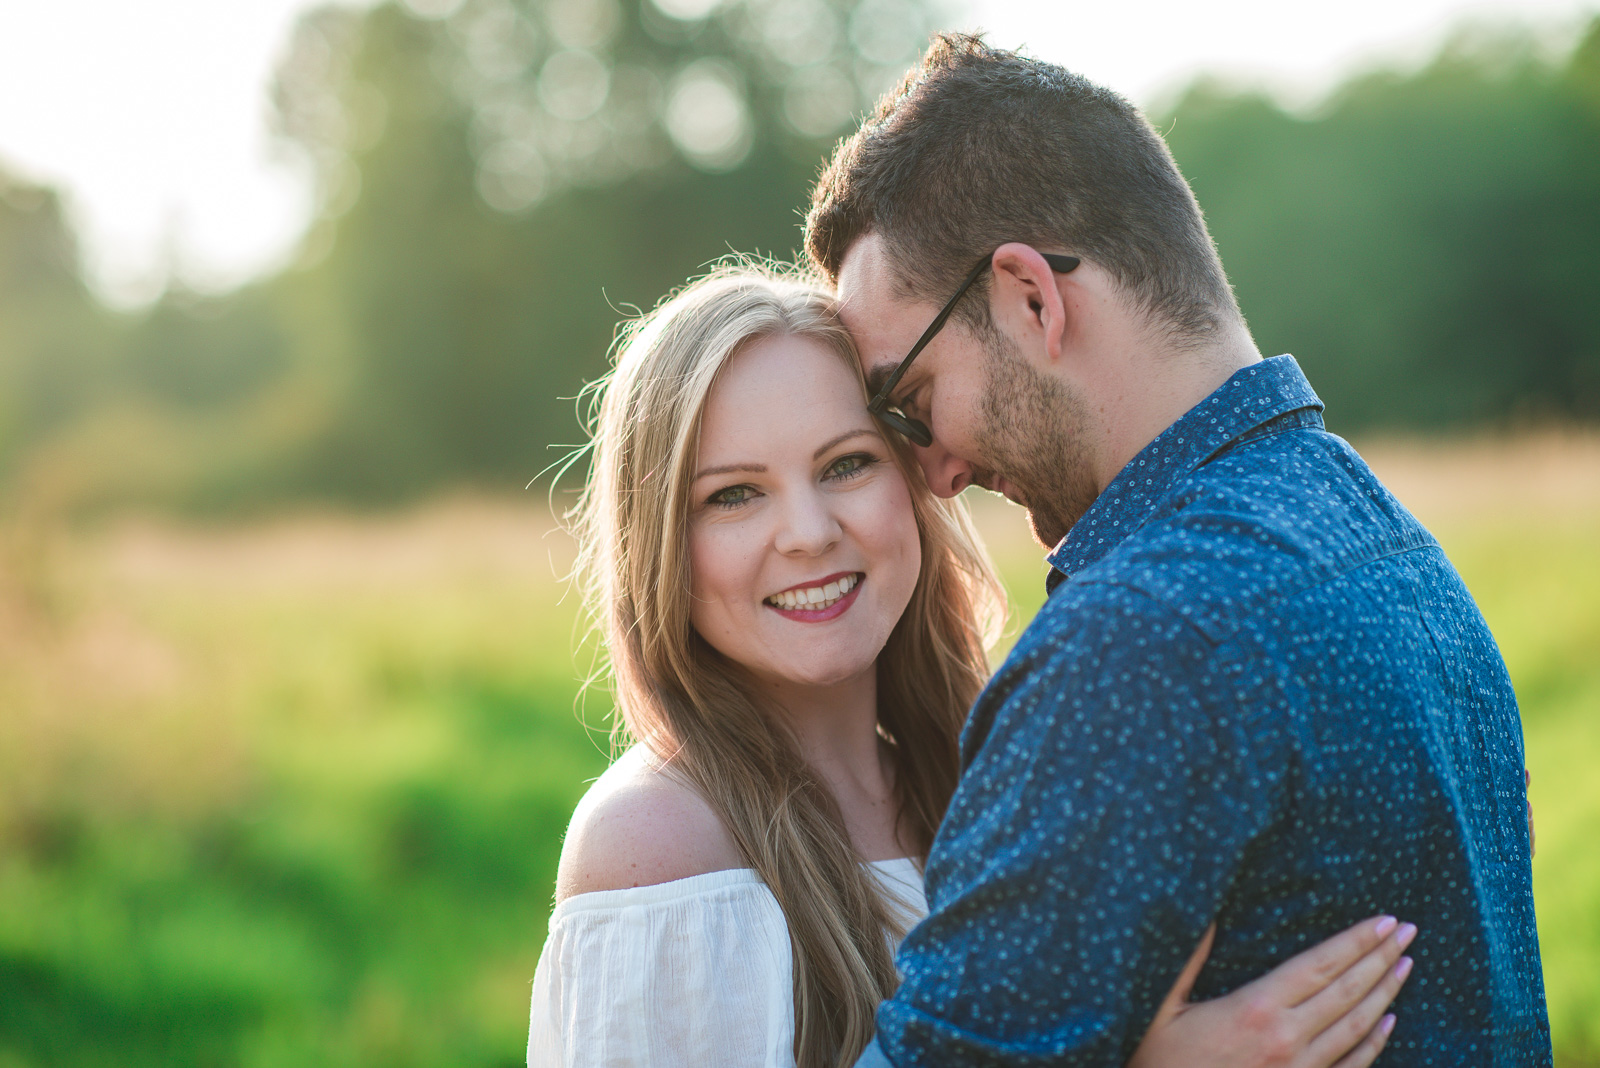 vancouver-island-wedding-photographers-campbell-valley-park-engagement-session-03.jpg